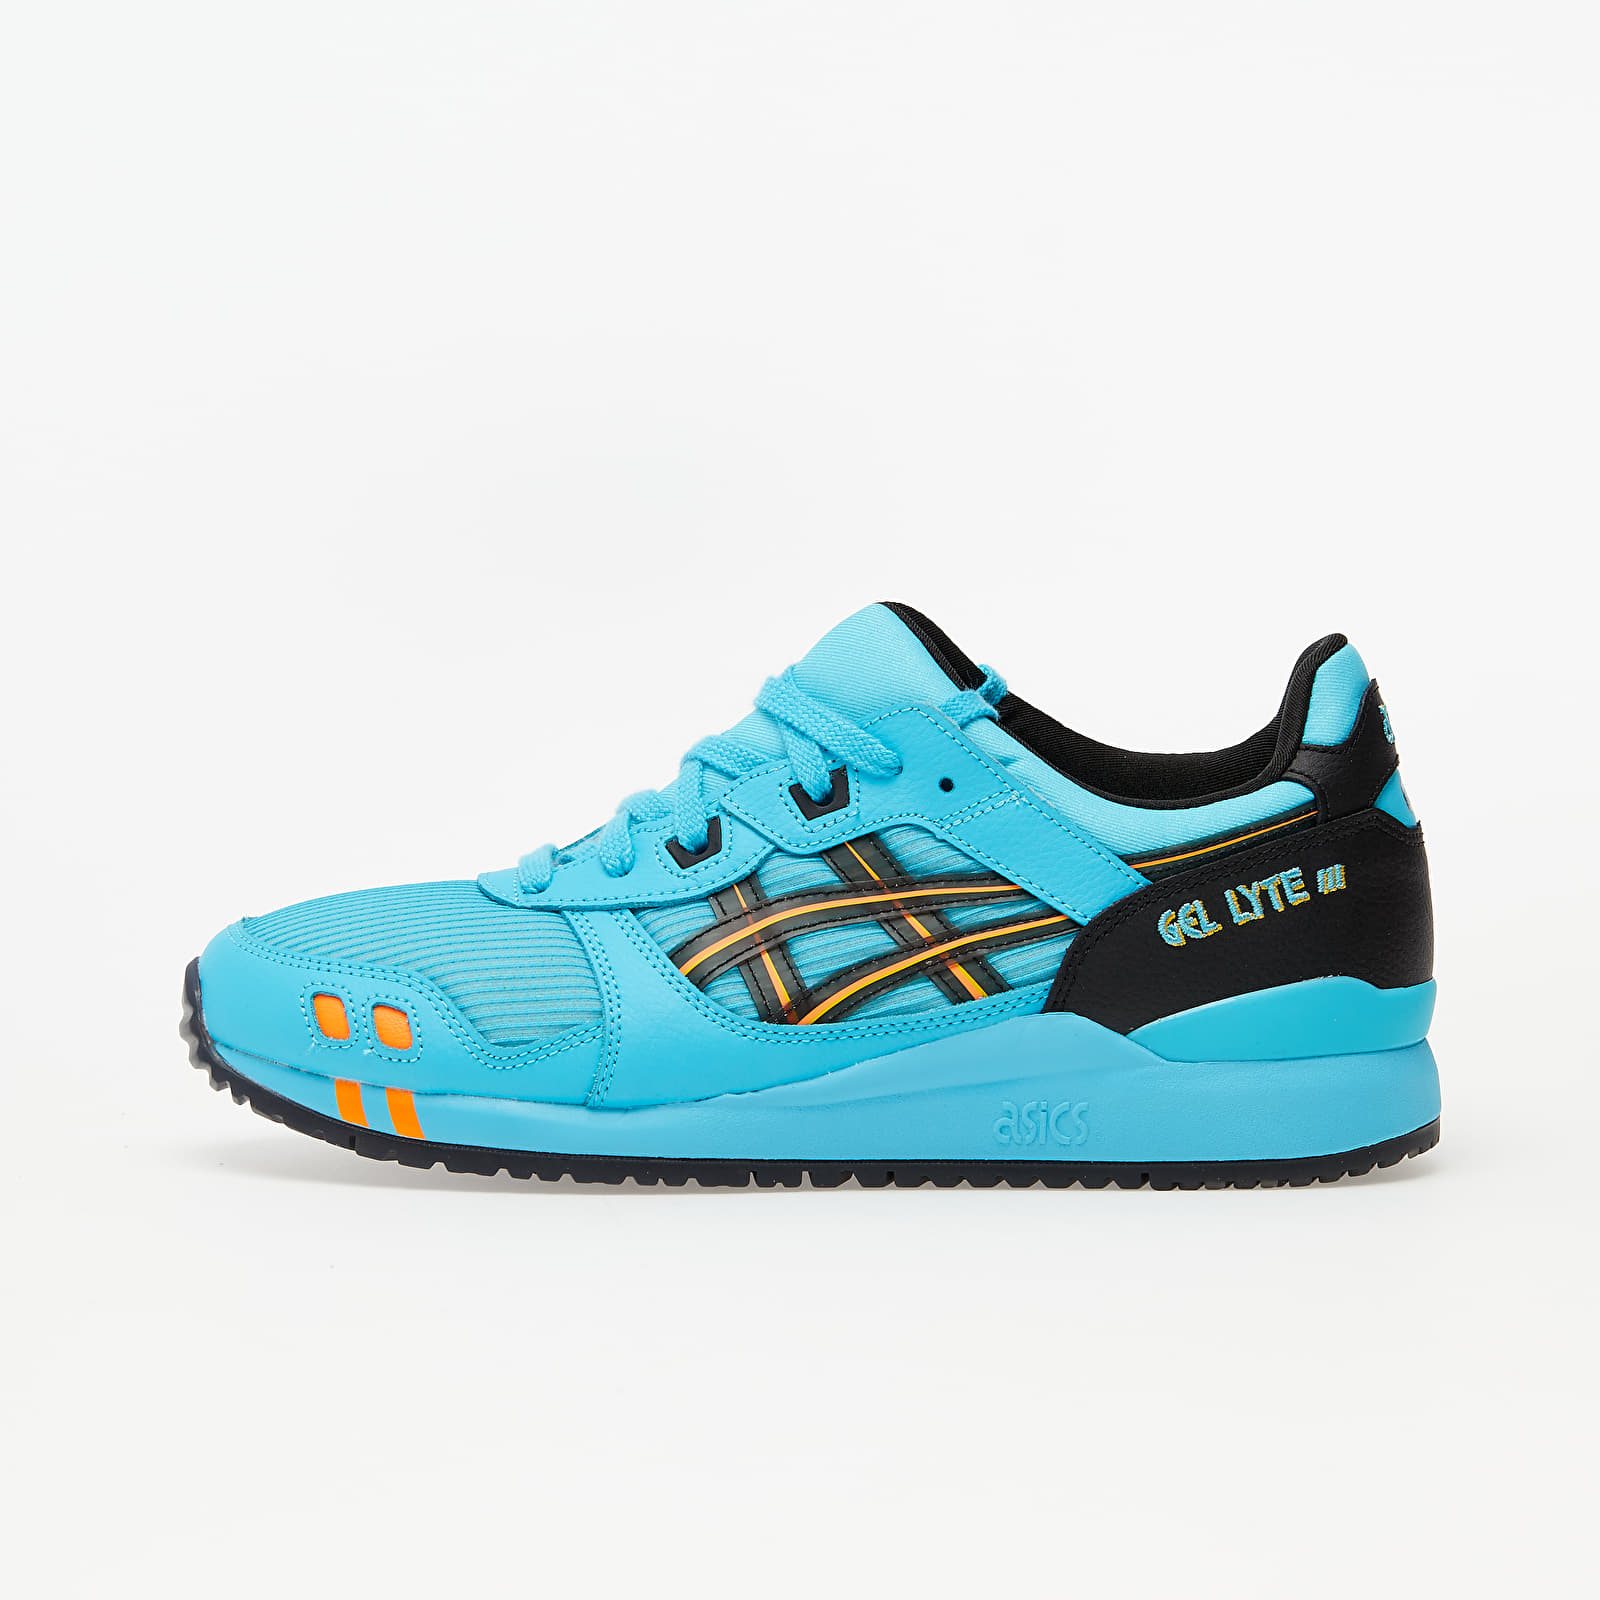 Asics Gel-Lyte III OG Aquarium/ Shocking Orange 1201A052-400